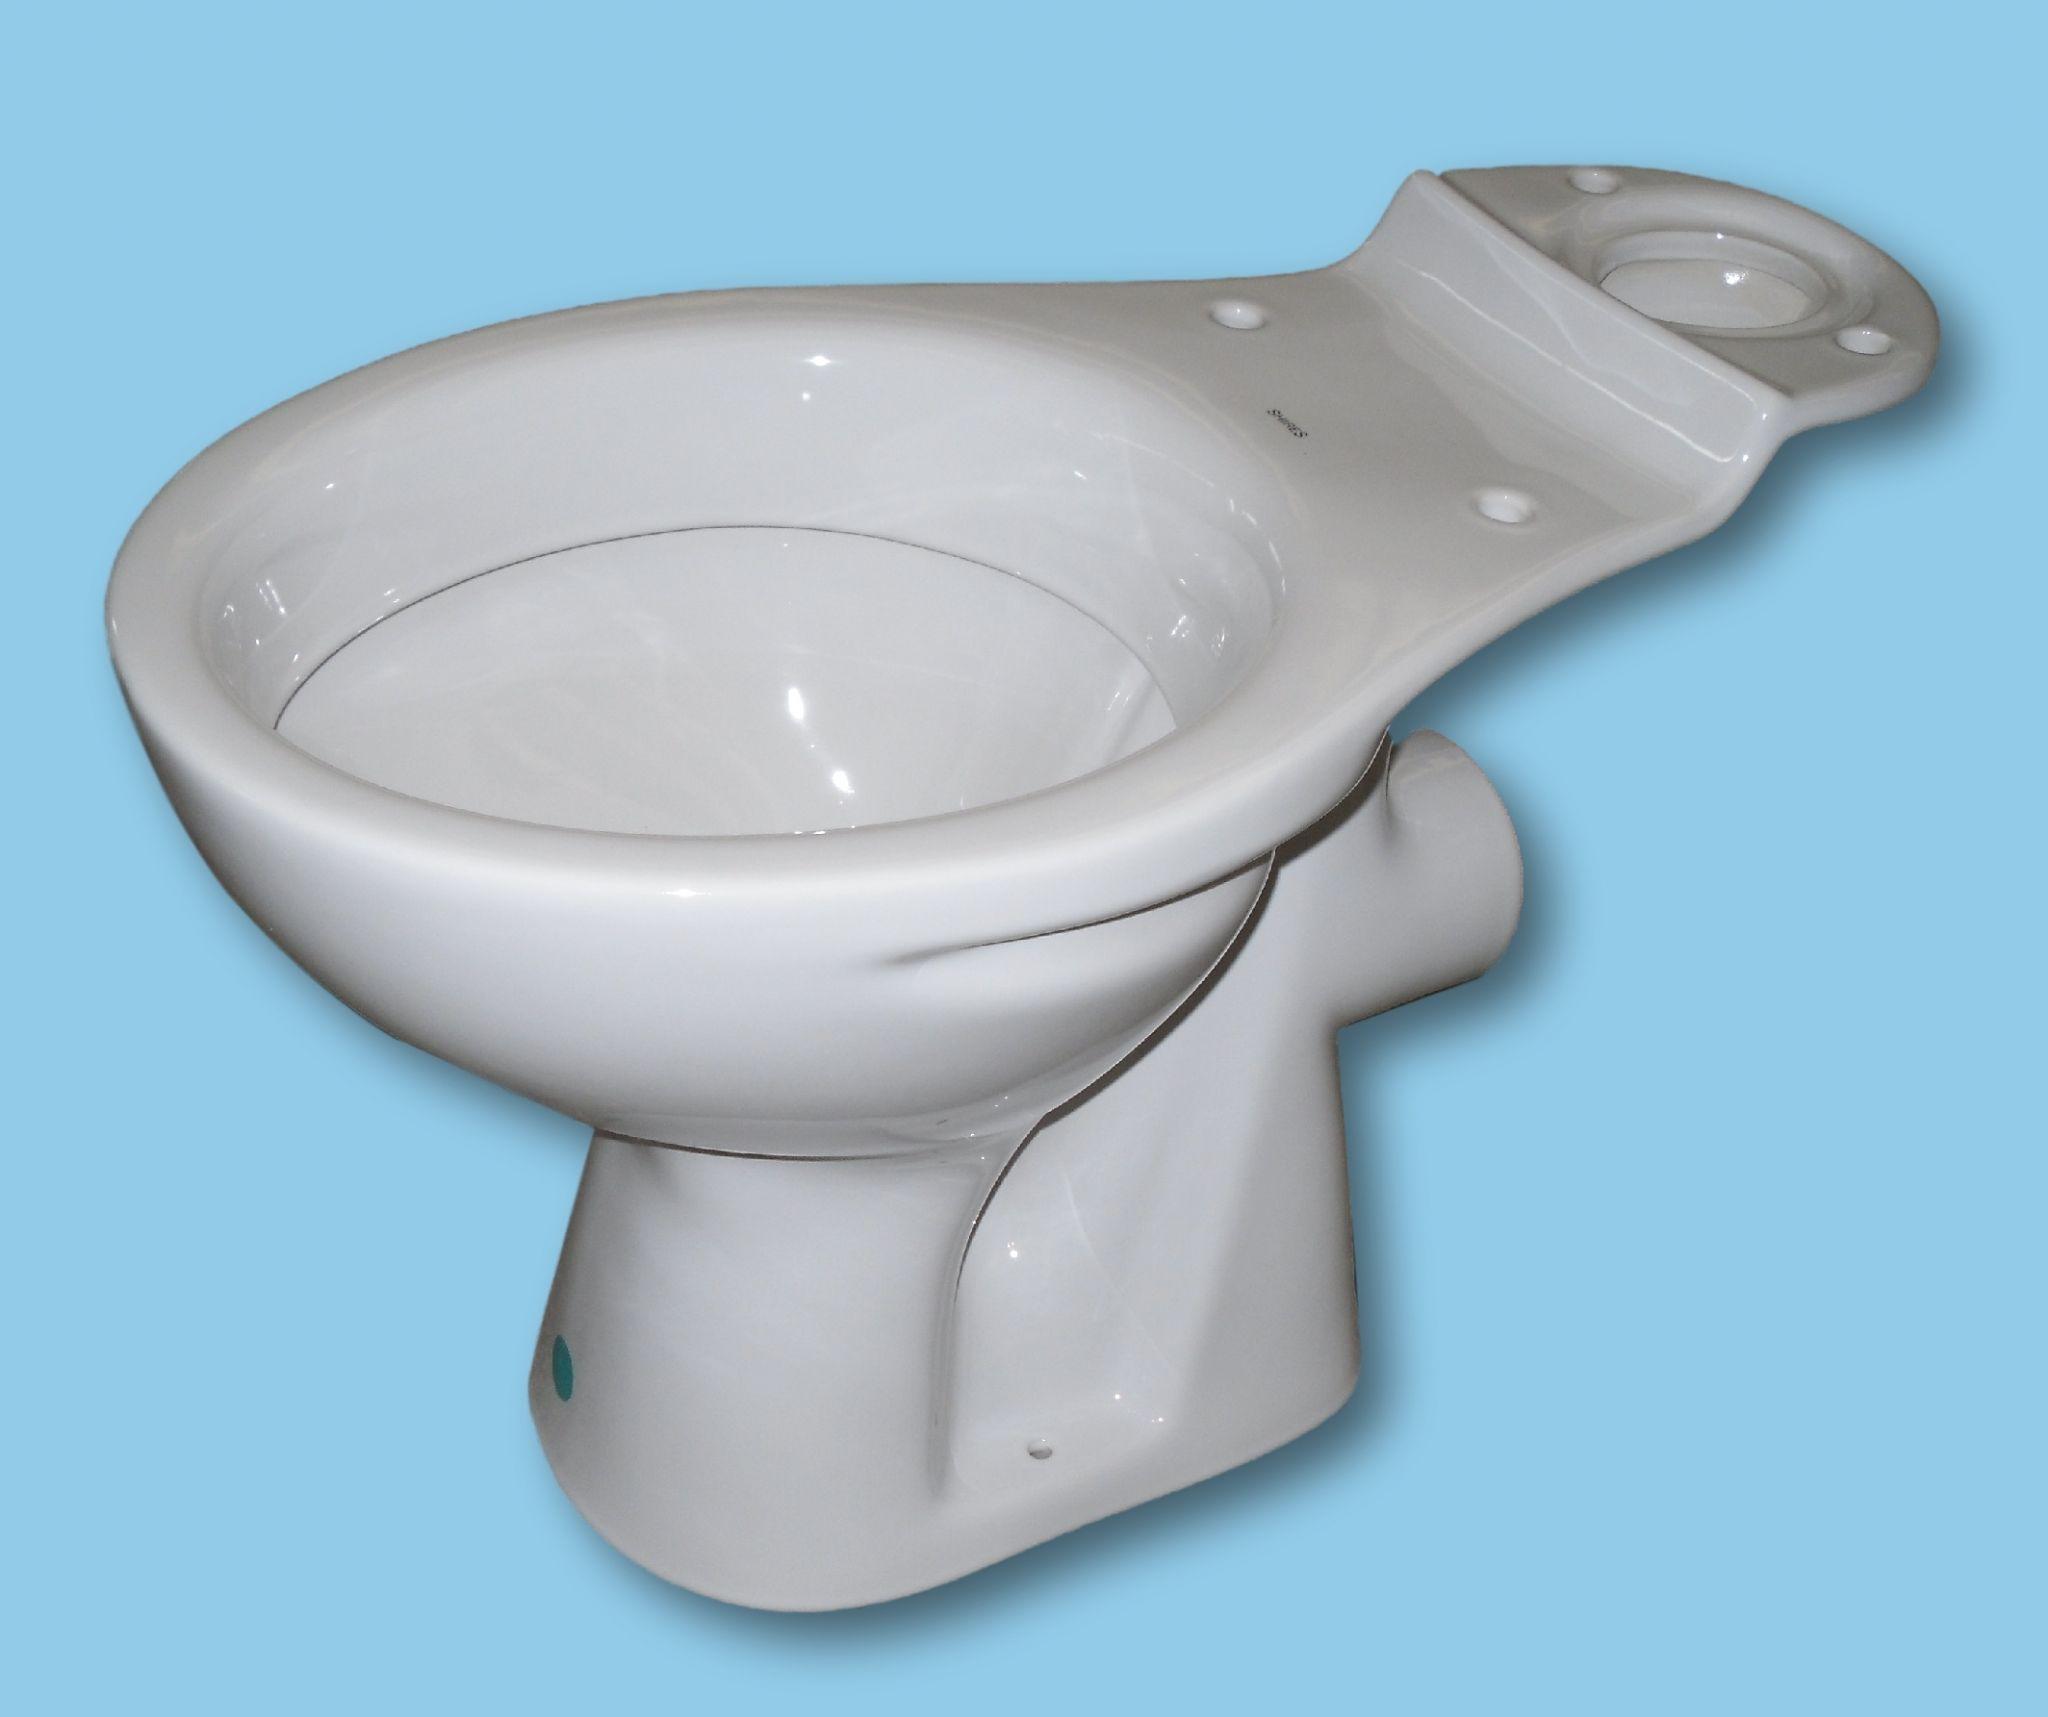 Armitage Shanks CLOSE COUPLED Replacement WC Toilet Pan